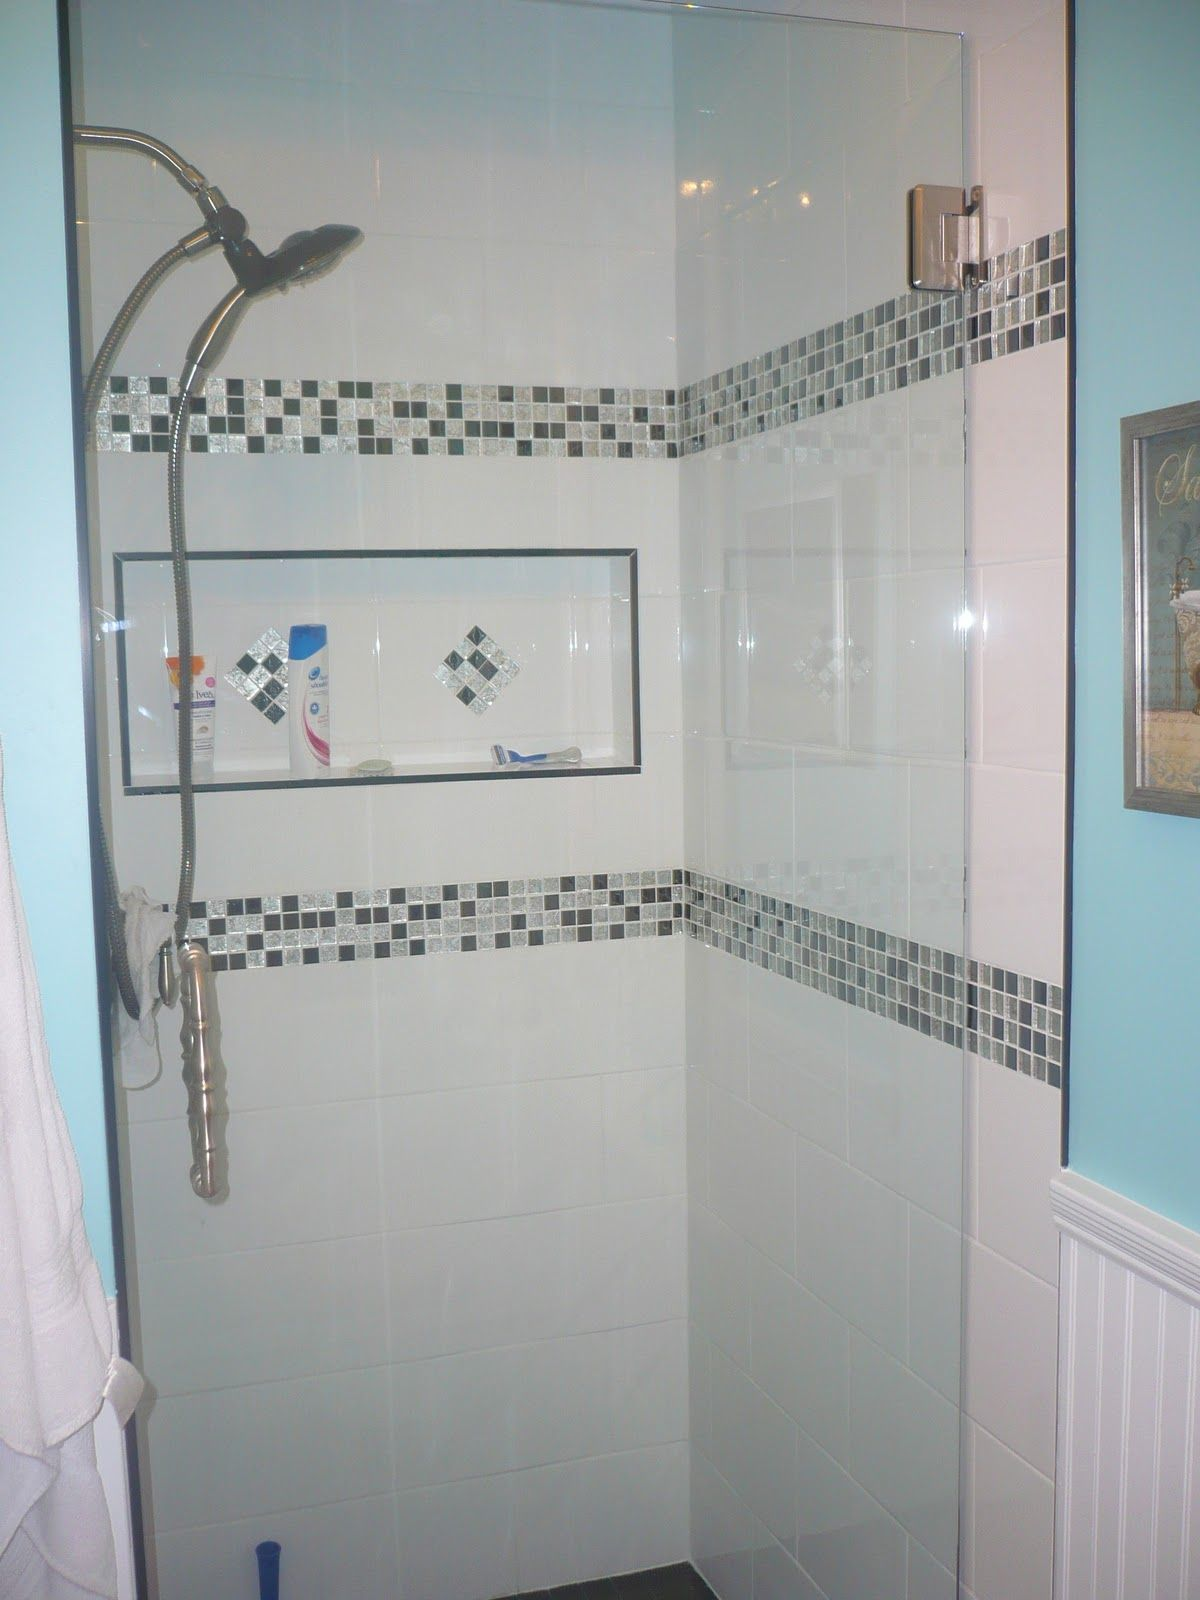 Decorative Tile Border In Shower 2 Bands Composed Of Small Squares Like The Niche  Bathroom